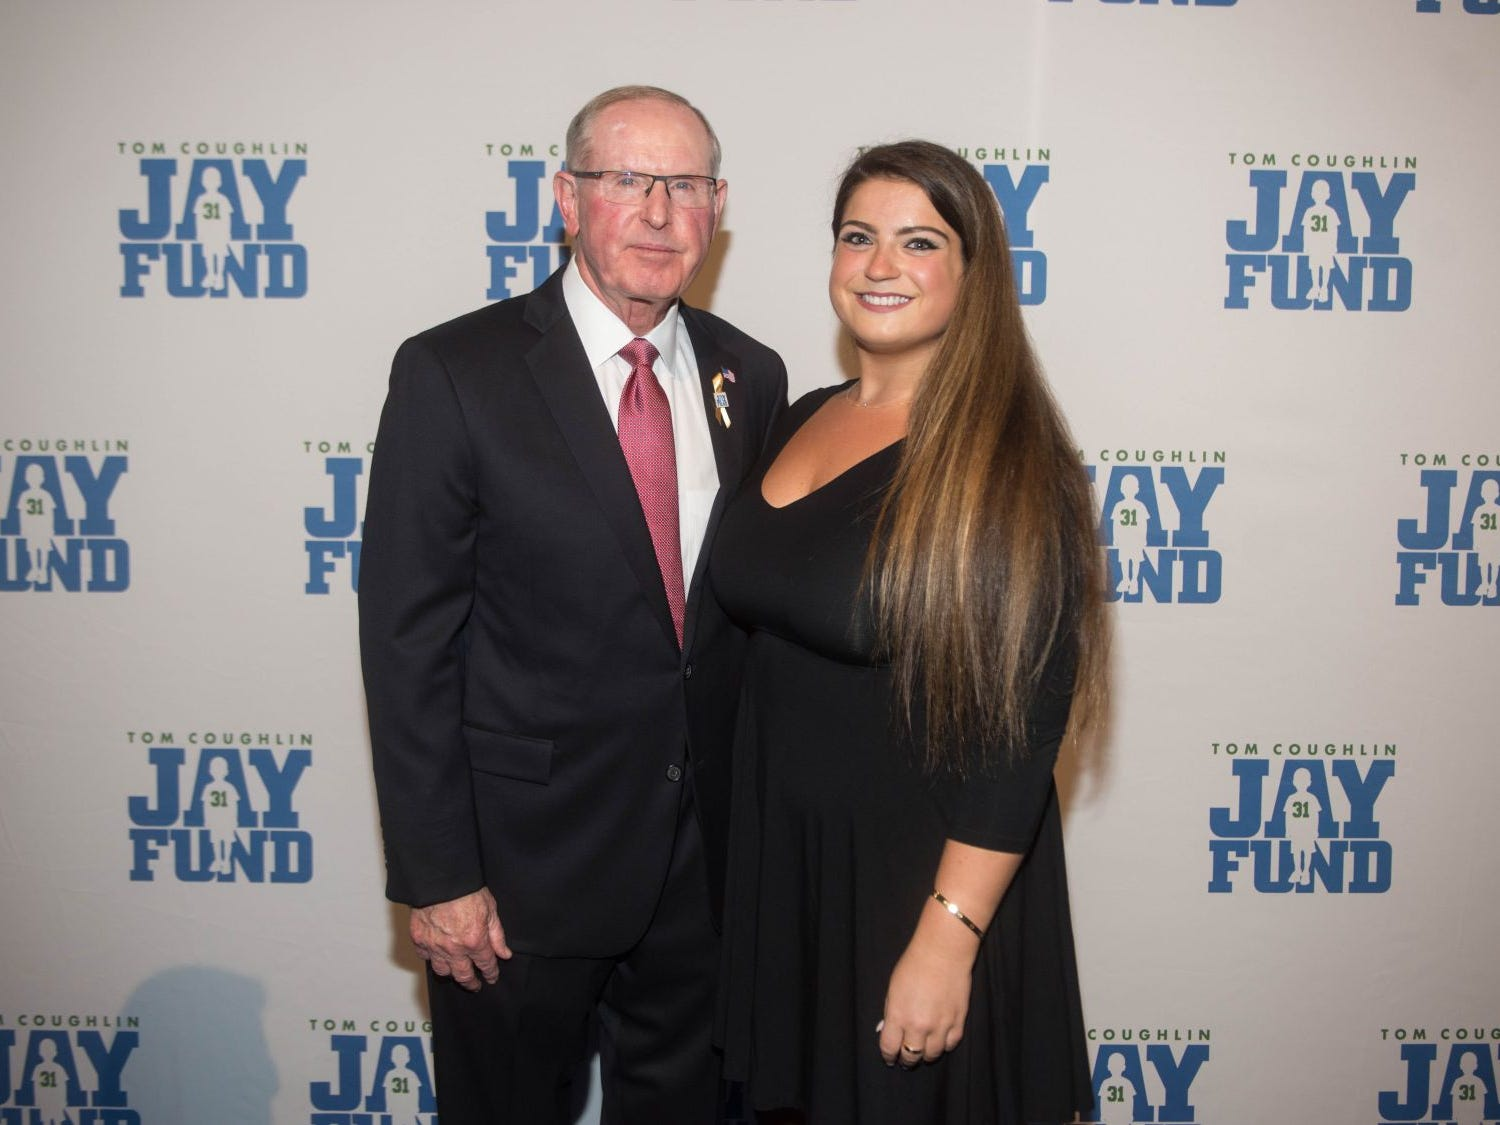 Tom Coughlin and Meghan G. The 14th annual Jay Fund Champions for Children Gala was held at Cipriani 42nd Street. 09/21/2018